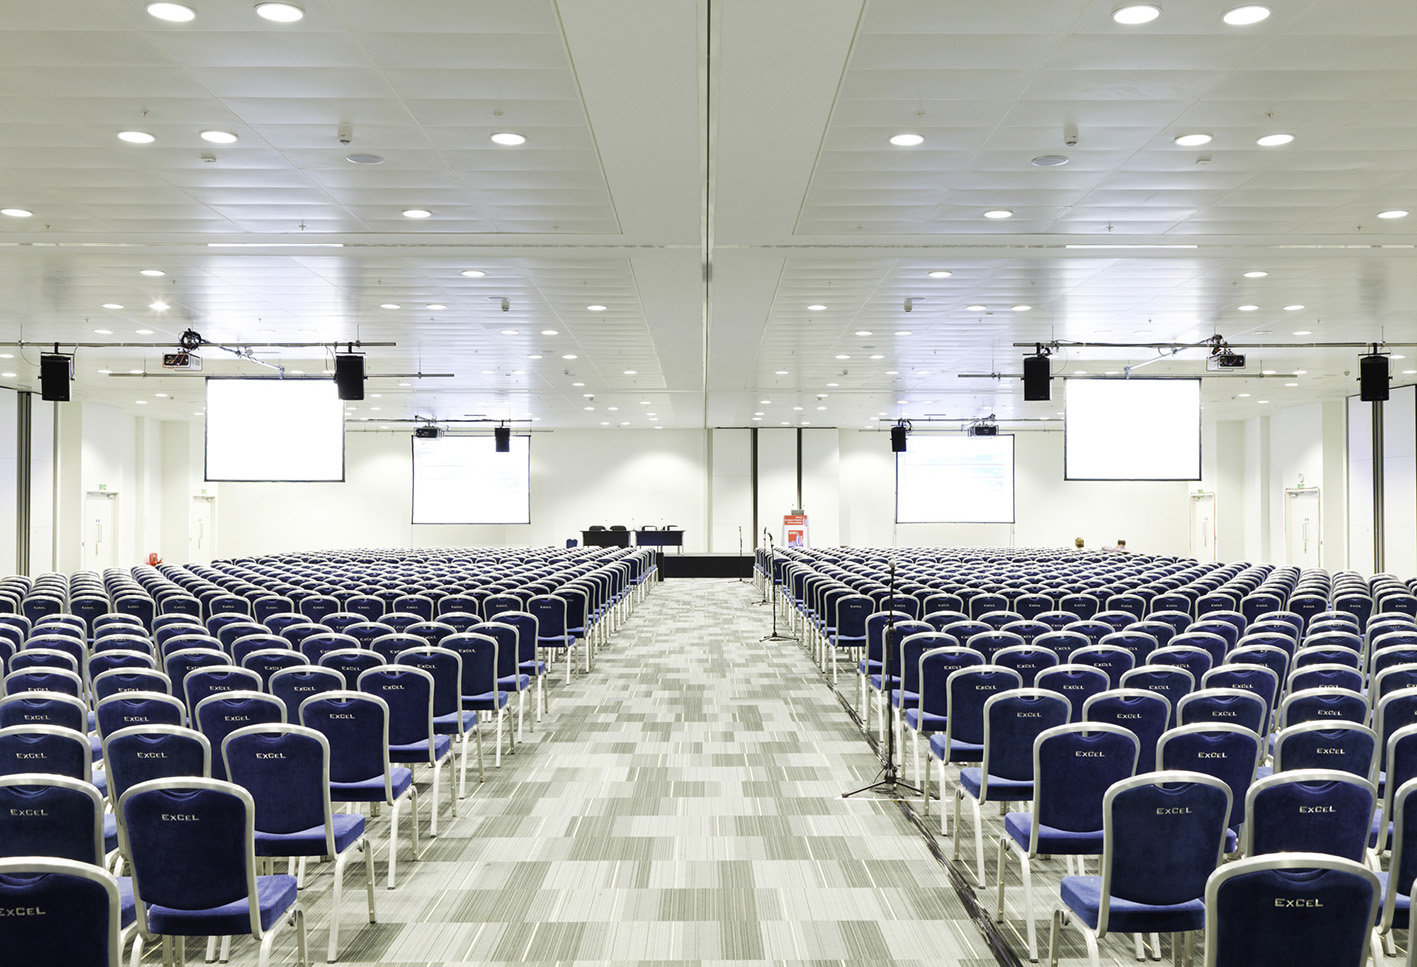 credit-excel-london-goodlight-led-lights-in-excel-open-room-sml